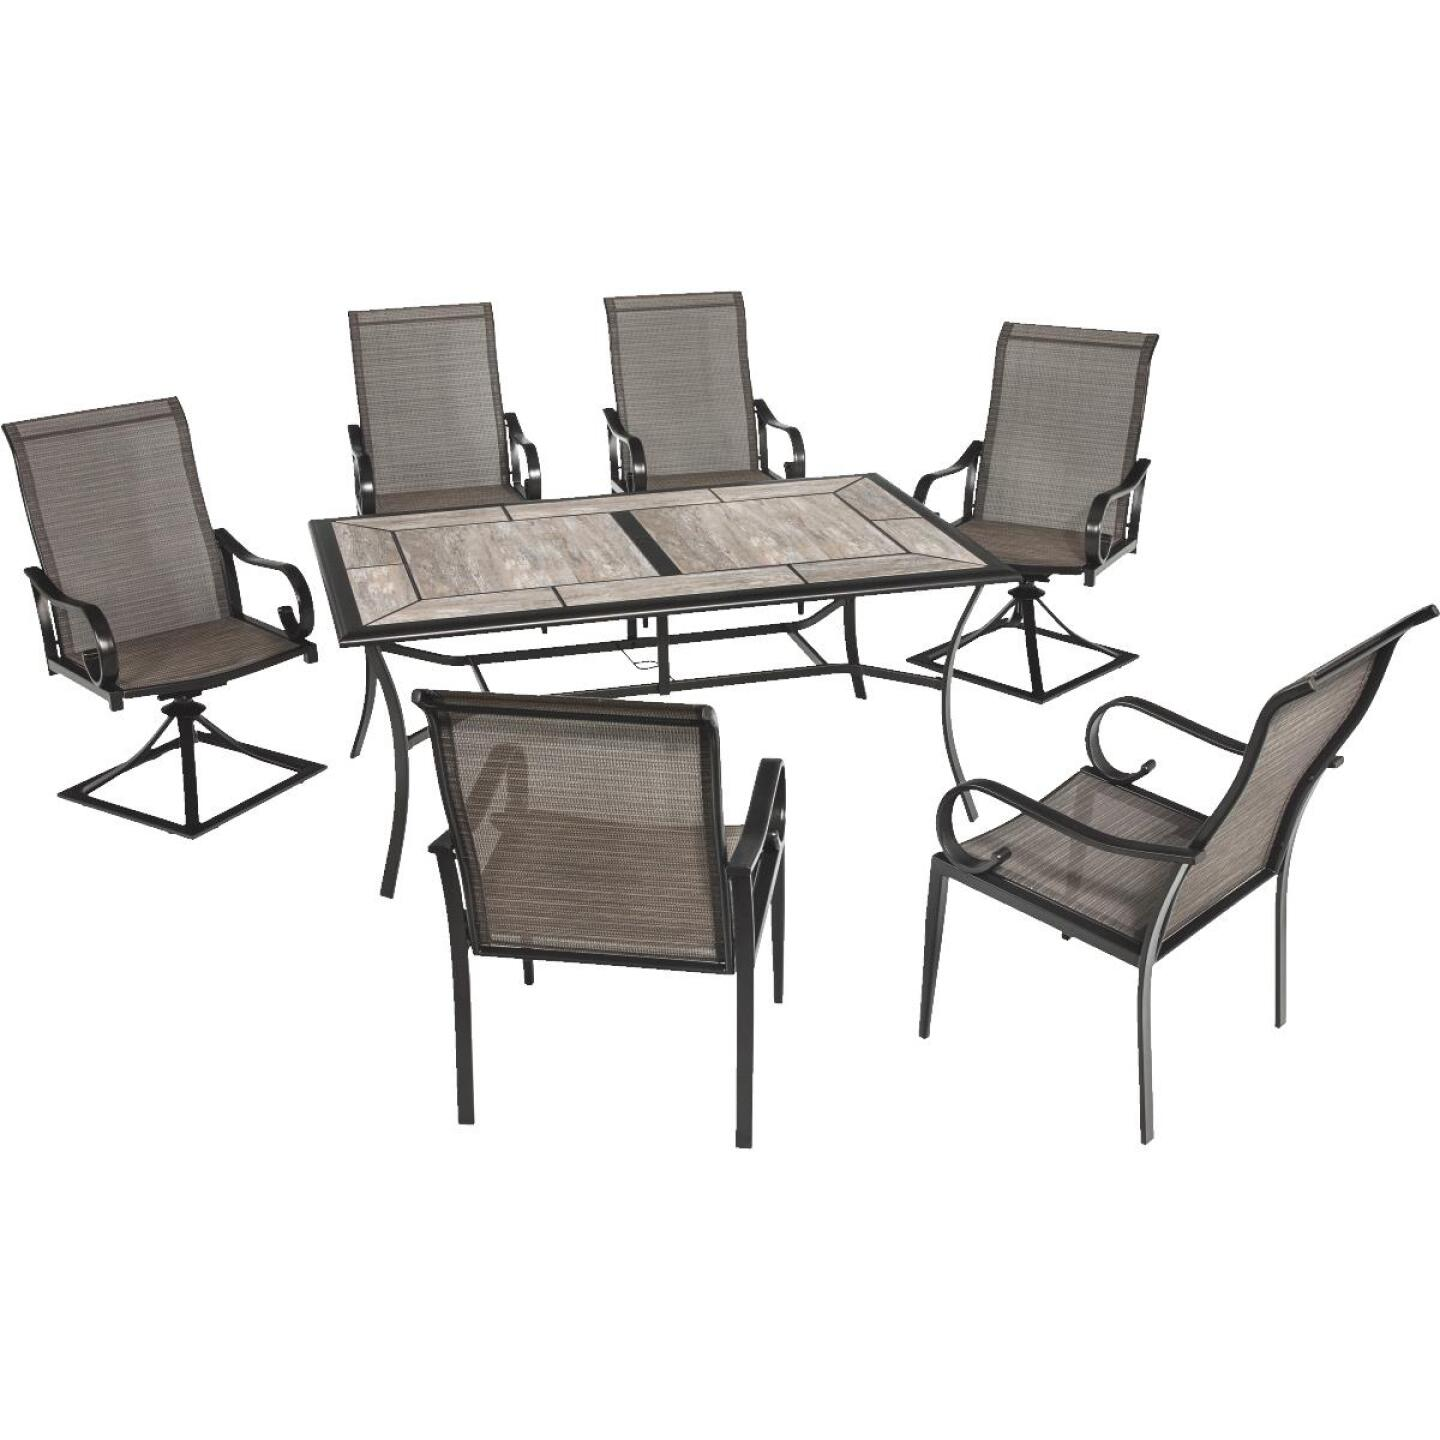 Outdoor Expressions Berkshire 7-Piece Dining Set Image 101